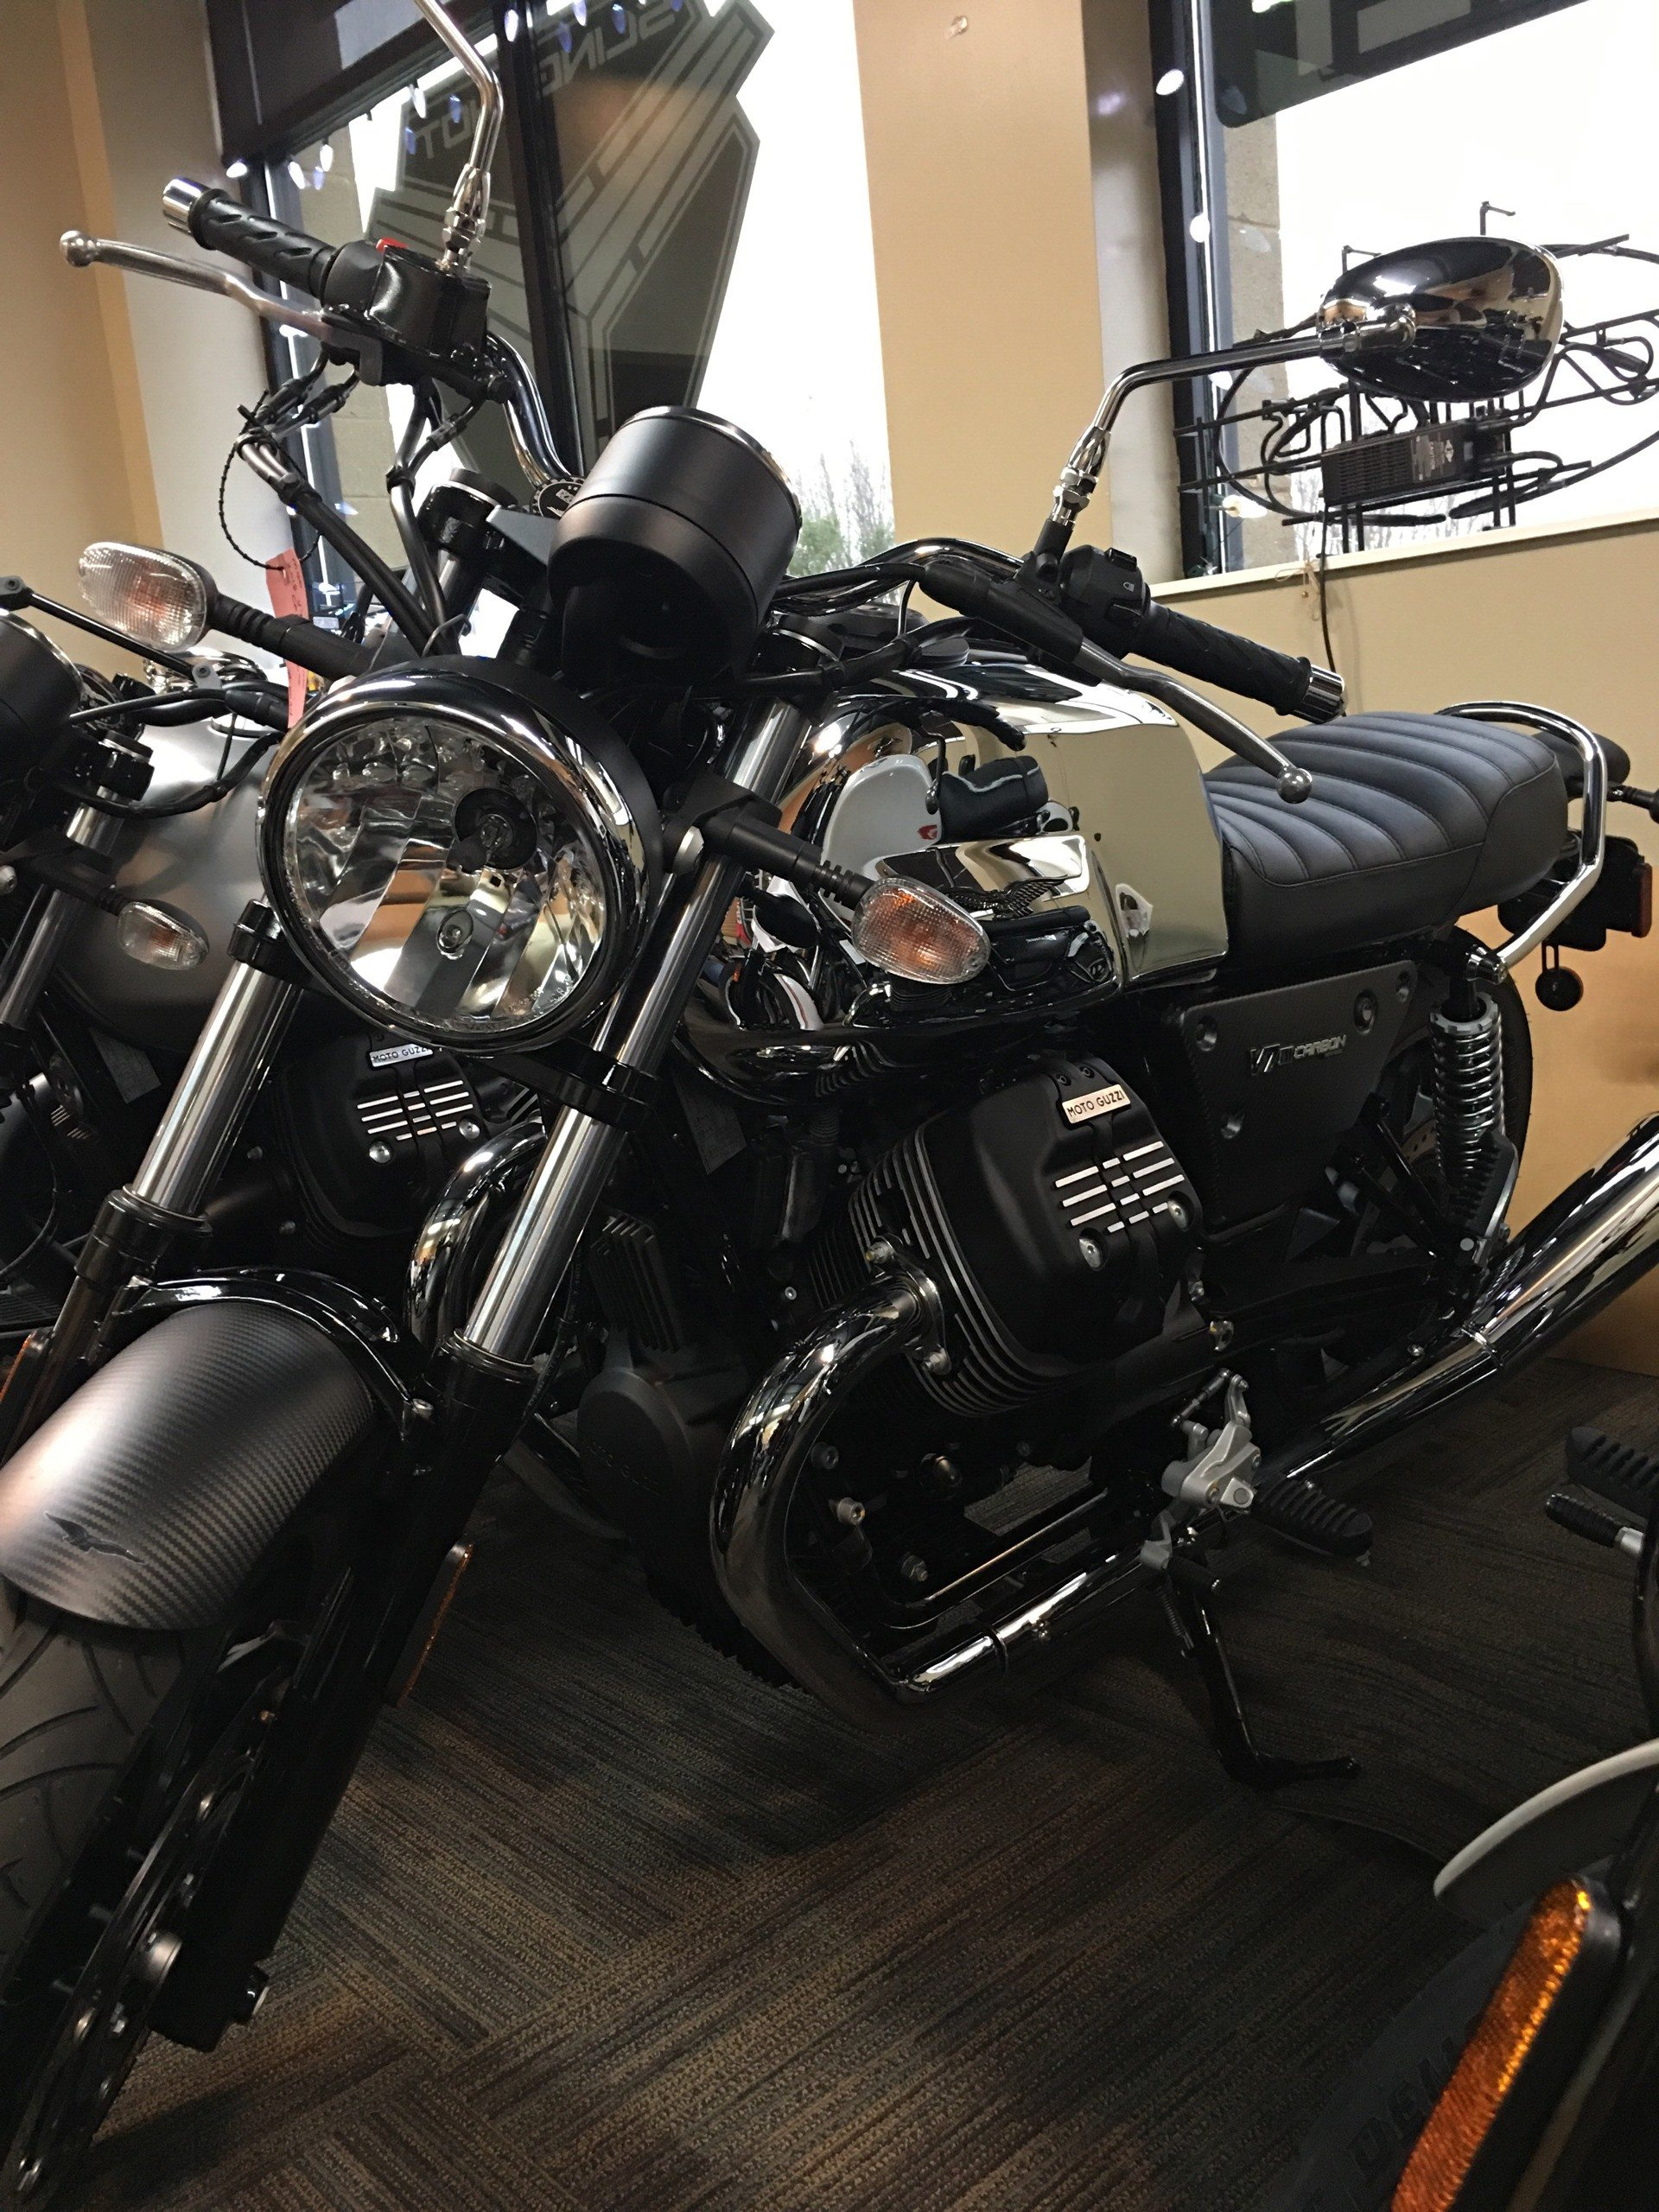 2018 Moto Guzzi V7 III Carbon Shine in Woodstock, Illinois - Photo 1